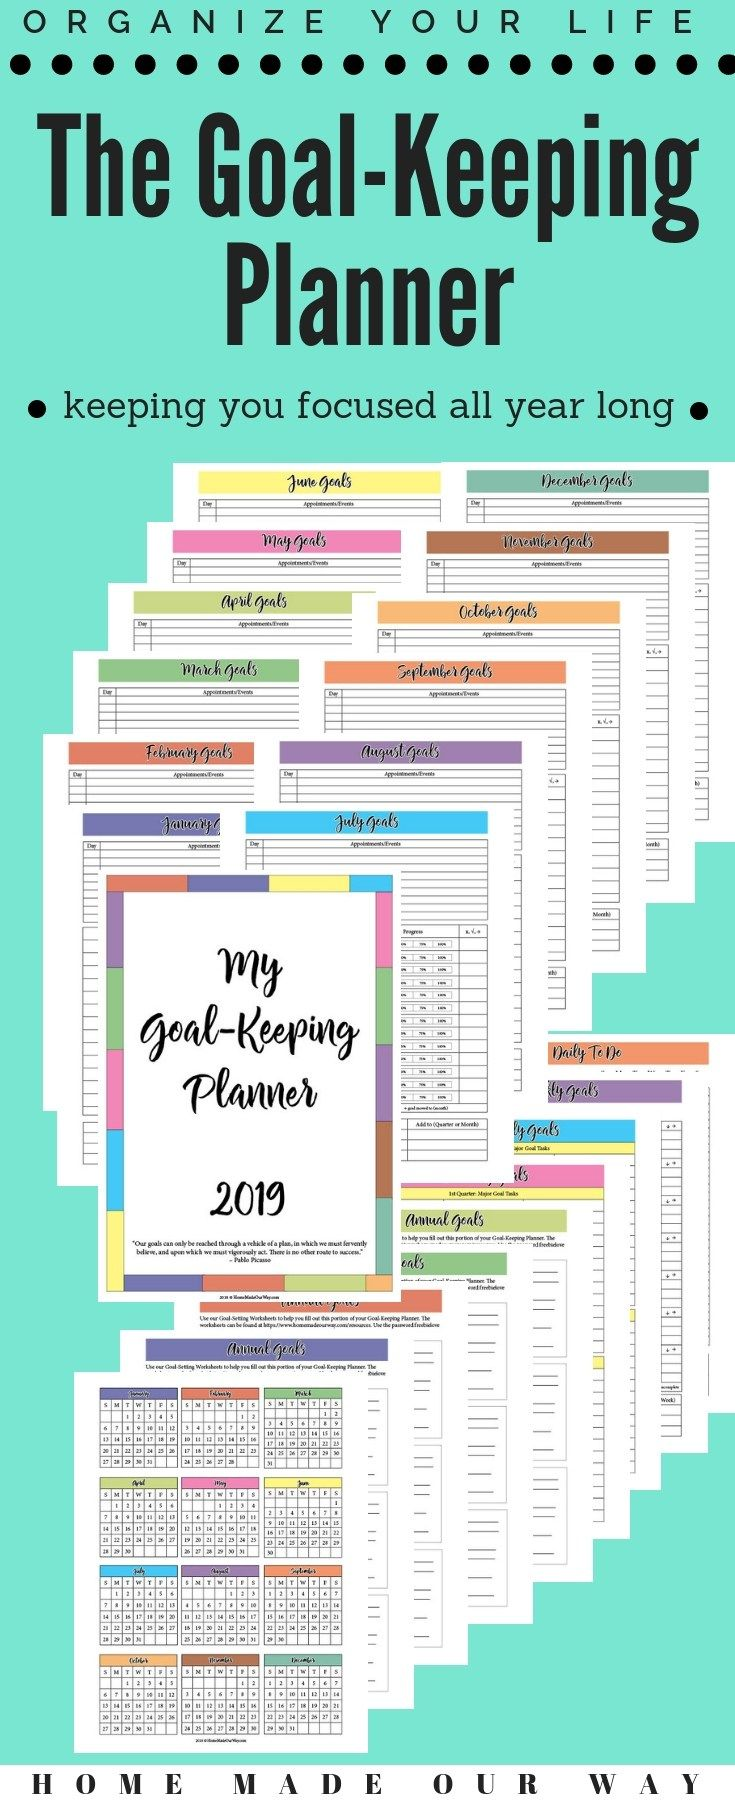 Learn More About Our New Goal Keeping Planner It Combines Goal Setting And A Yearly Planner In One So That You Stay Focu Personal Calendar Goals Mini Planners